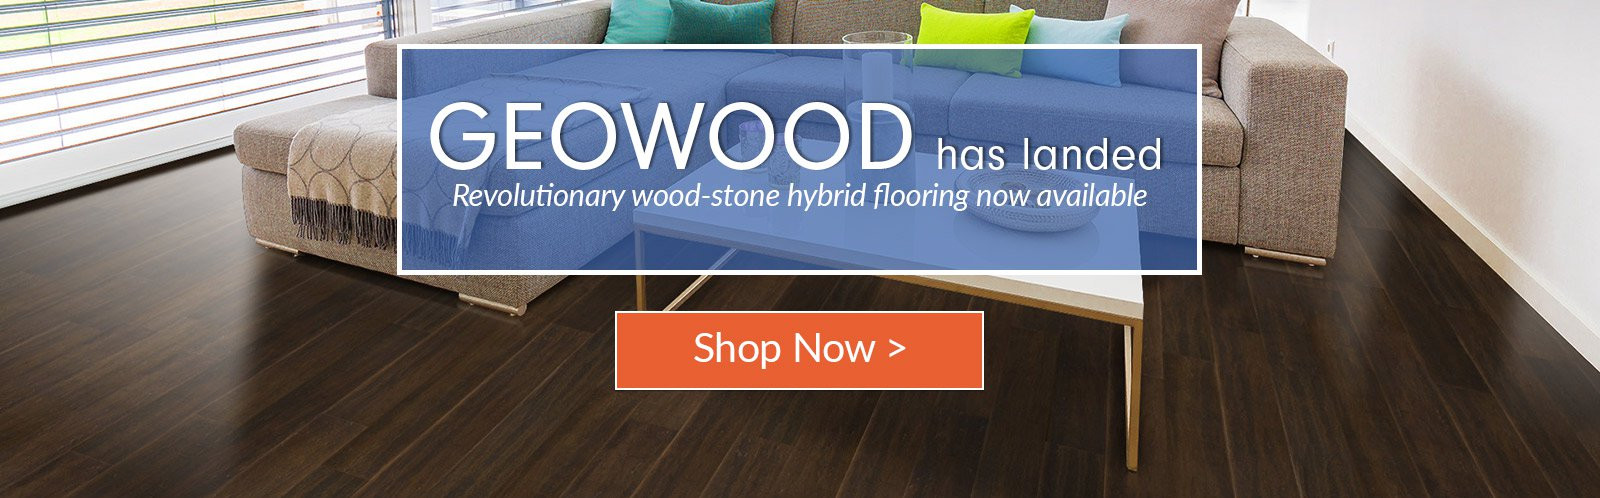 living room rug on hardwood floor of green building construction materials and home decor cali bamboo with geowood launch homepage slider